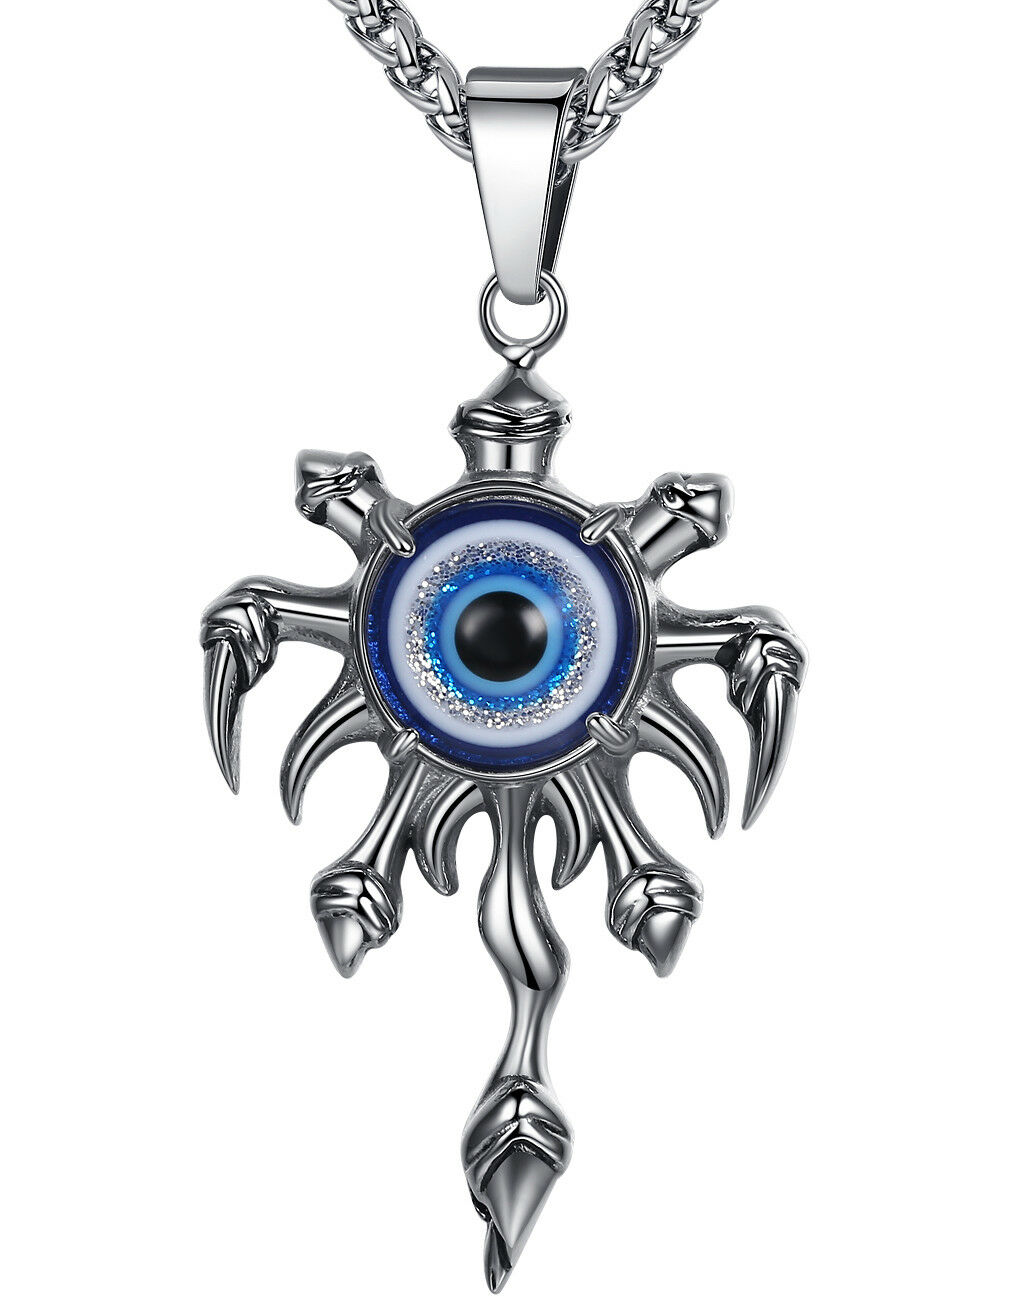 Men's Stainless Steel Blue Evil Eye Claw and Flame Biker Pendant Necklace Chains, Necklaces & Pendants